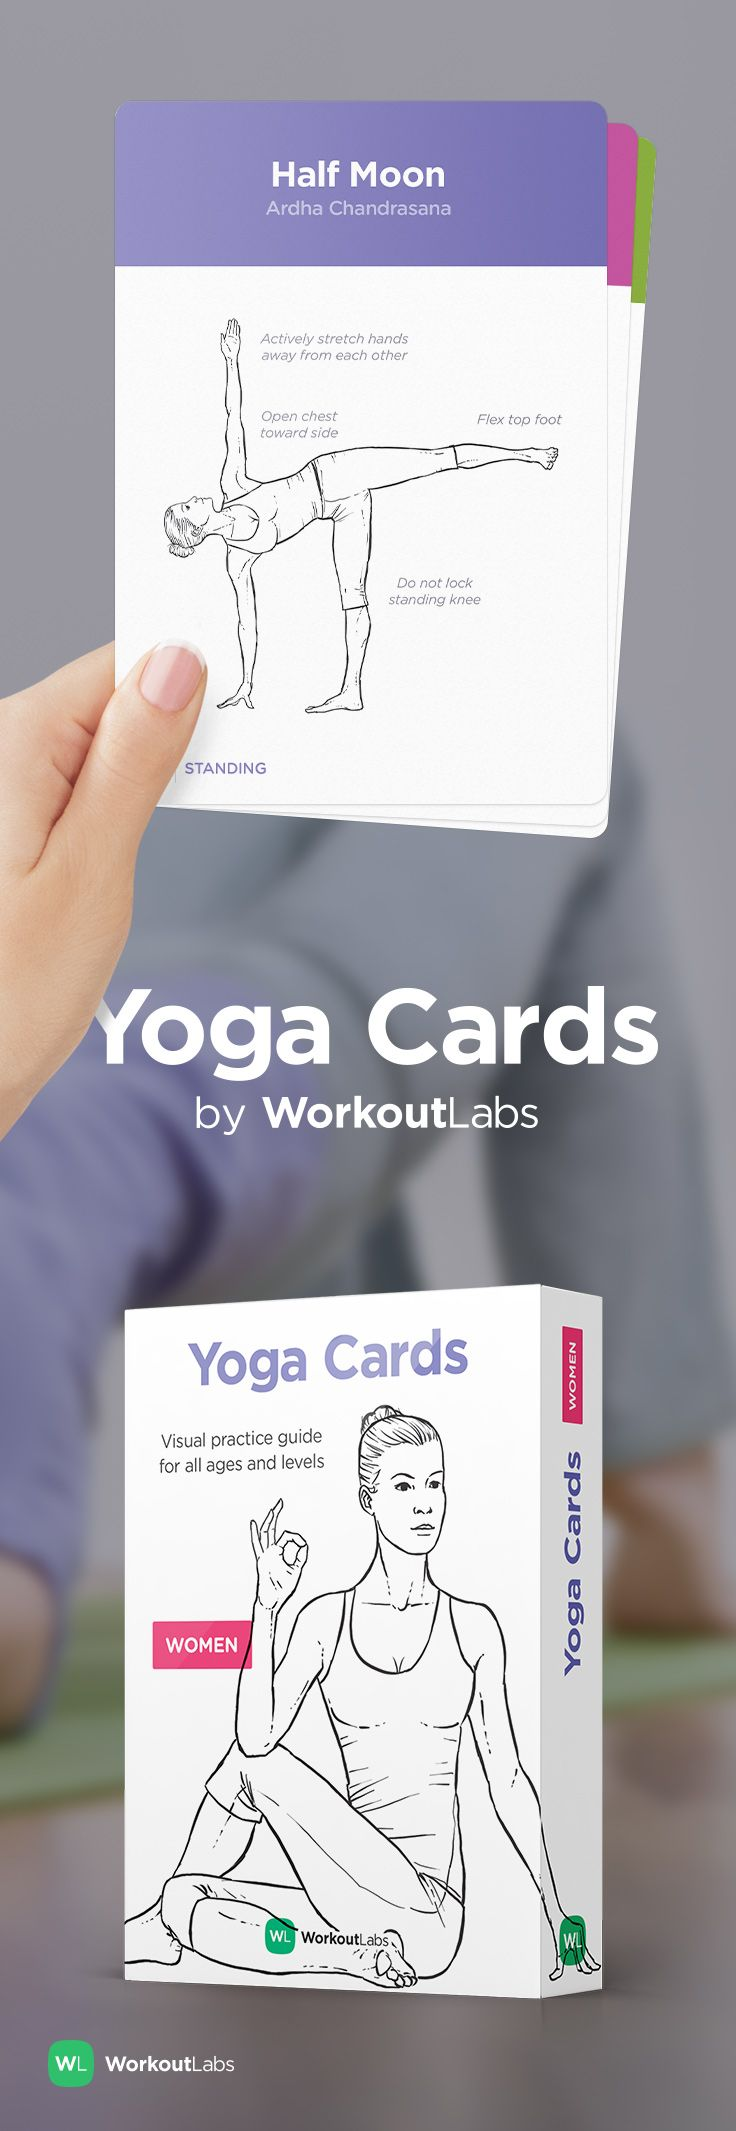 Learn and practice yoga independently with YOGA CARDS –a simple visual guide with essential poses, breathing exercises and meditation. Visit http://WLShop.co